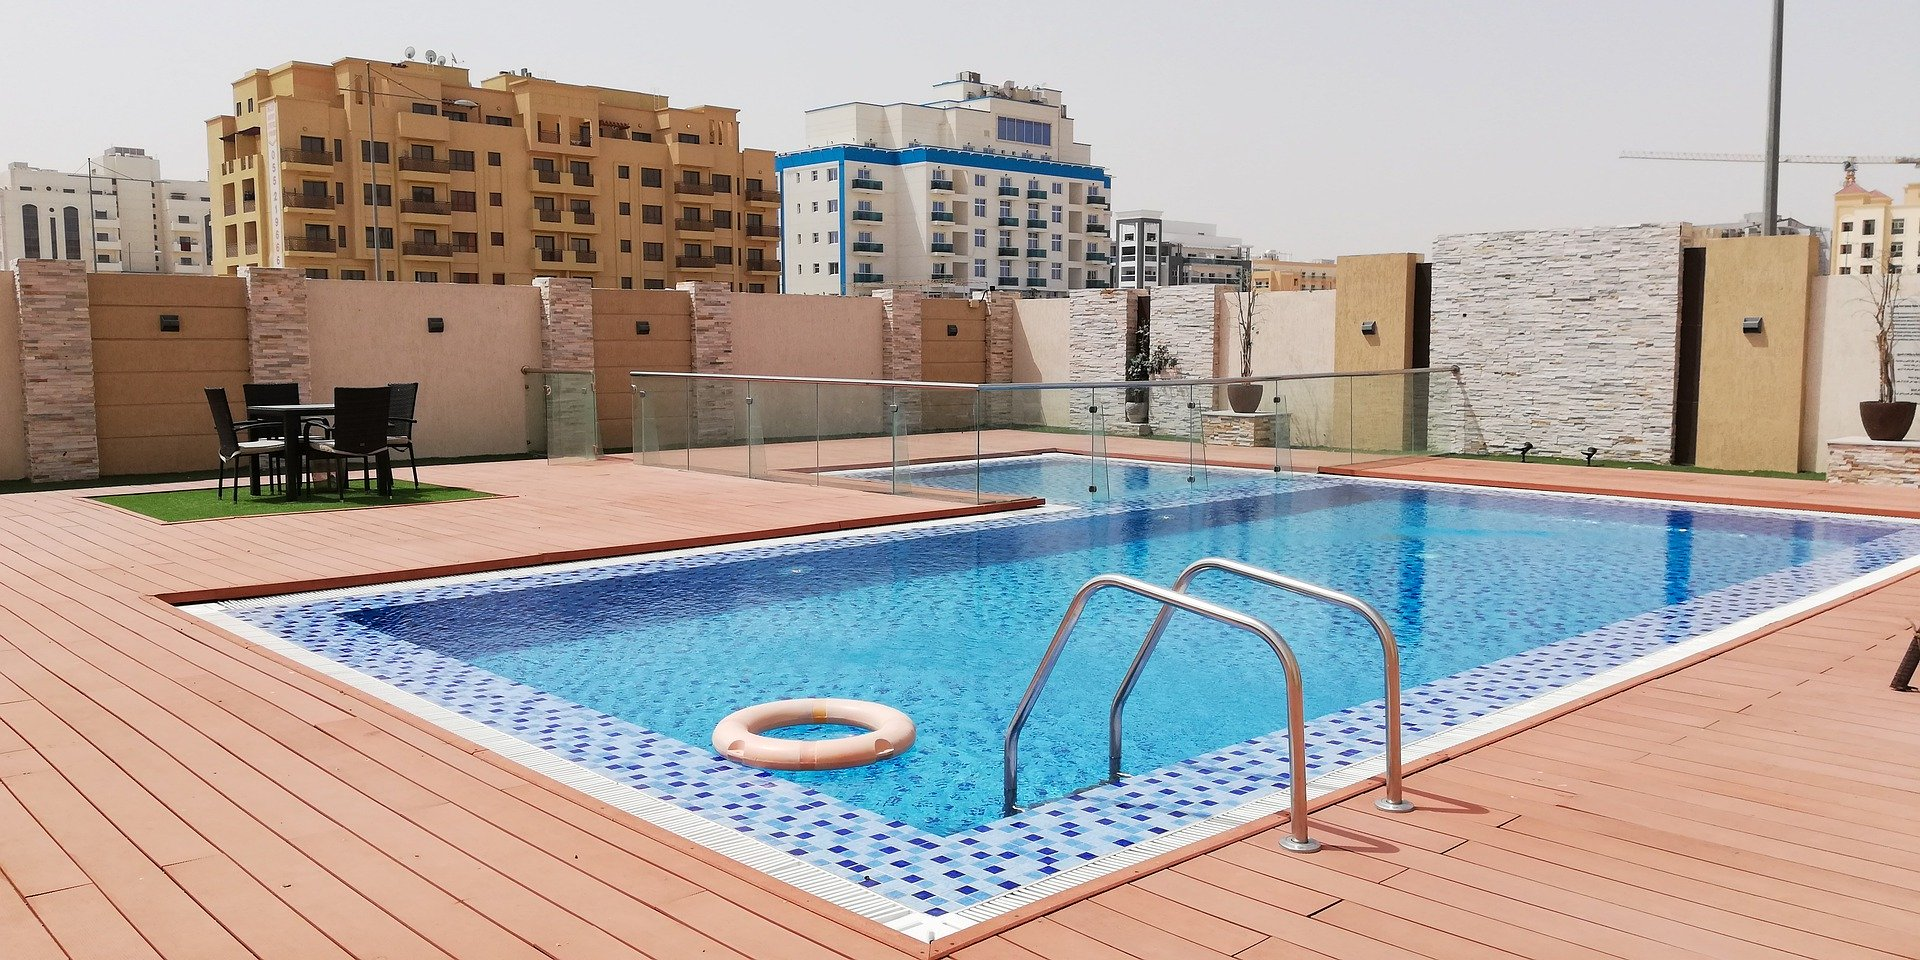 Electrical Safety in Swimming Pools